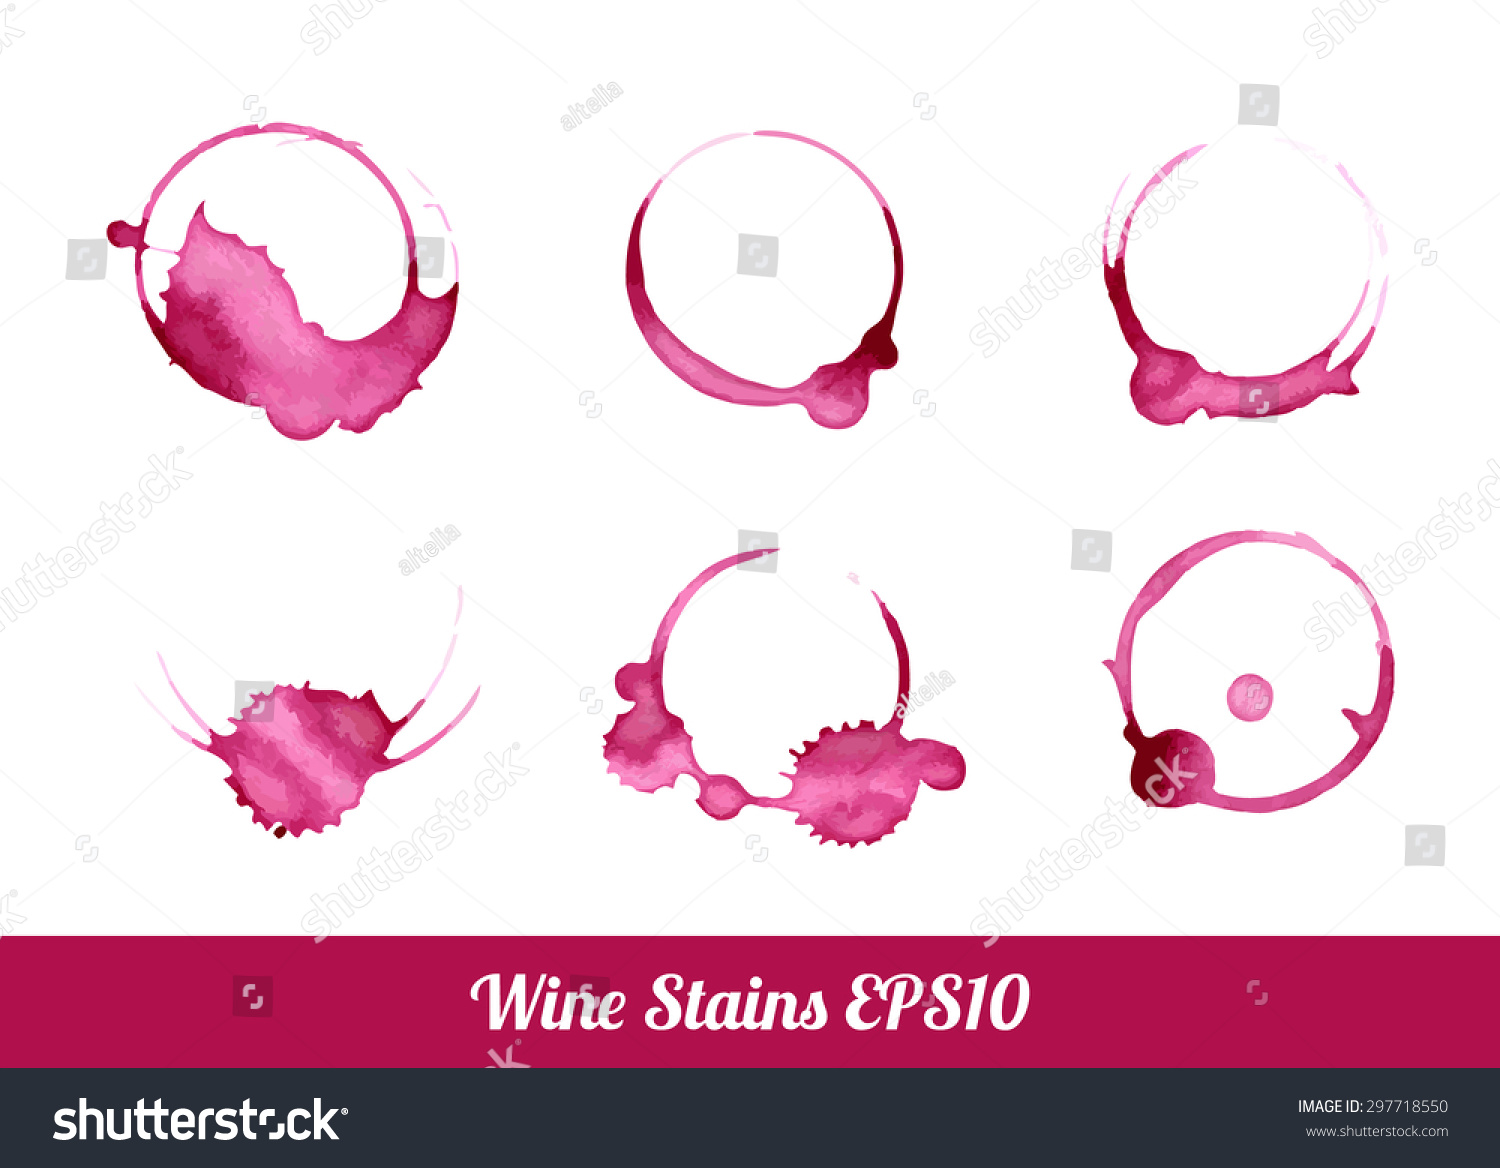 how to get set wine stains out of clothes